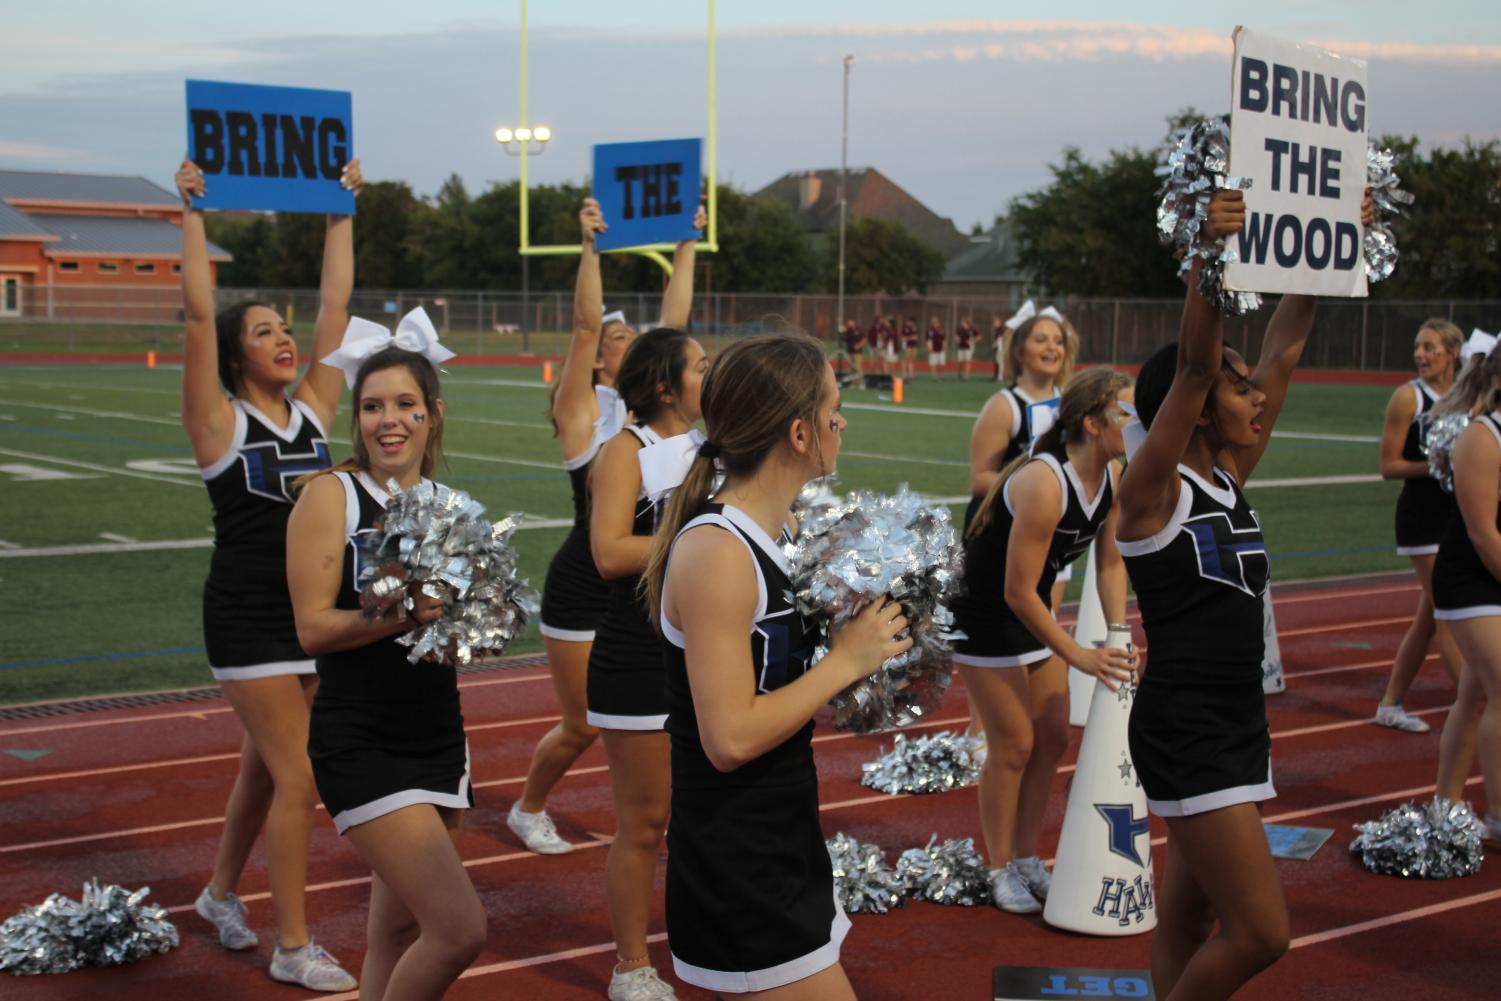 The+cheerleaders+motivate+the+crowd+to+cheer+louder+and+%E2%80%9Cbring+the+wood.%E2%80%9D+They+are+there+to+motivate+the+audience+and+the+football+players+by+yelling%2C+cheering%2C+and+performing+stunts+for+the+crowd.+%0A